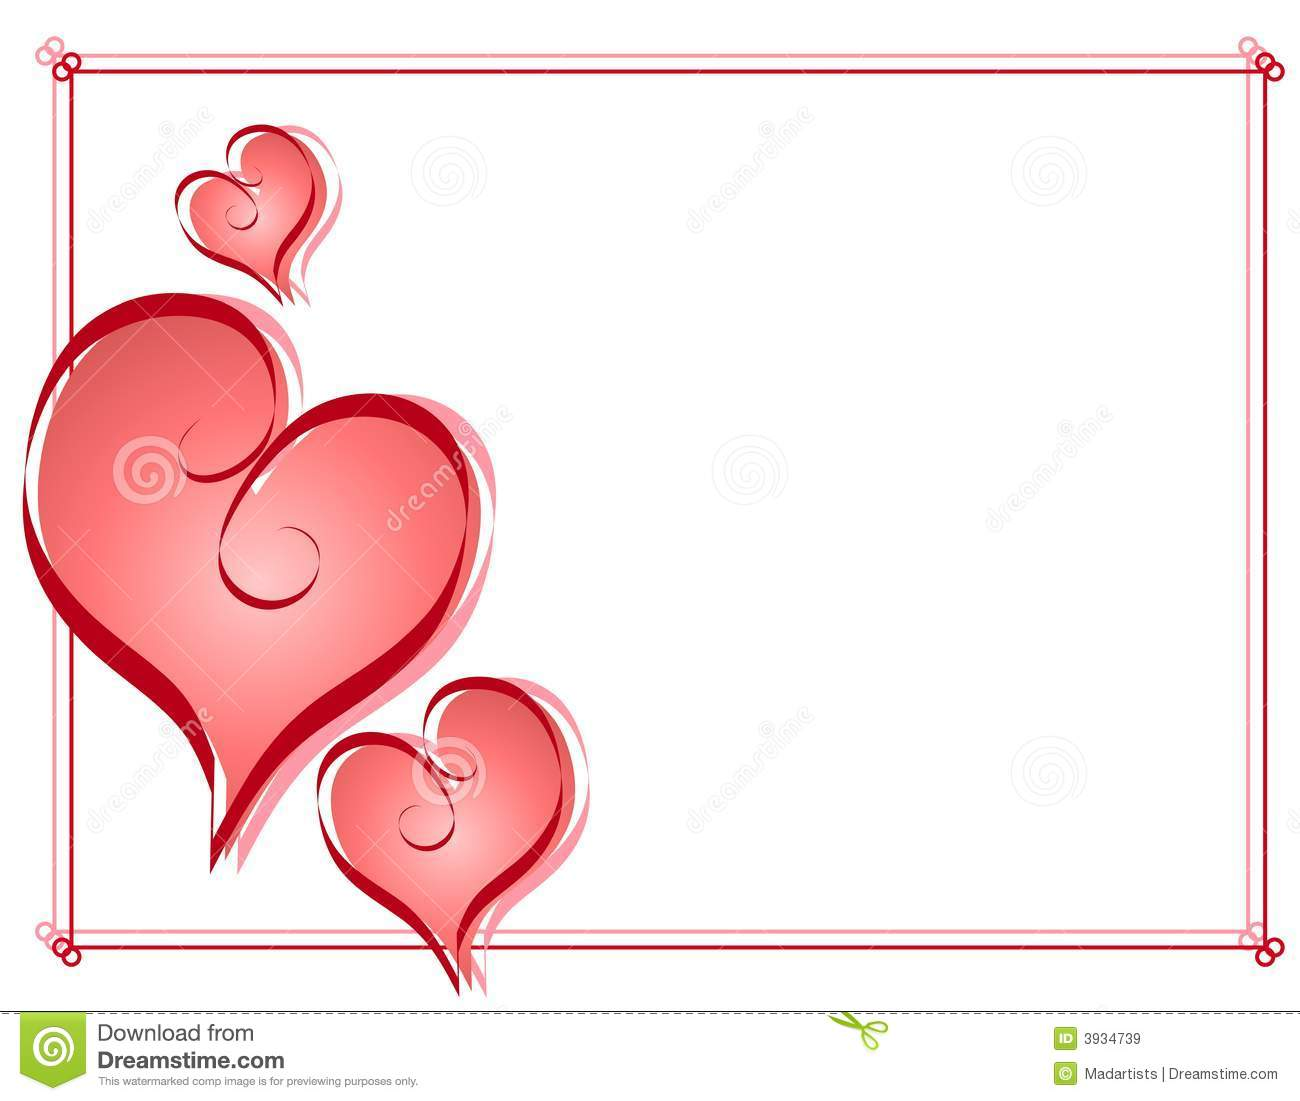 graphic about Valentine Borders Free Printable known as 57+ Valentine Border Clip Artwork Absolutely free ClipartLook